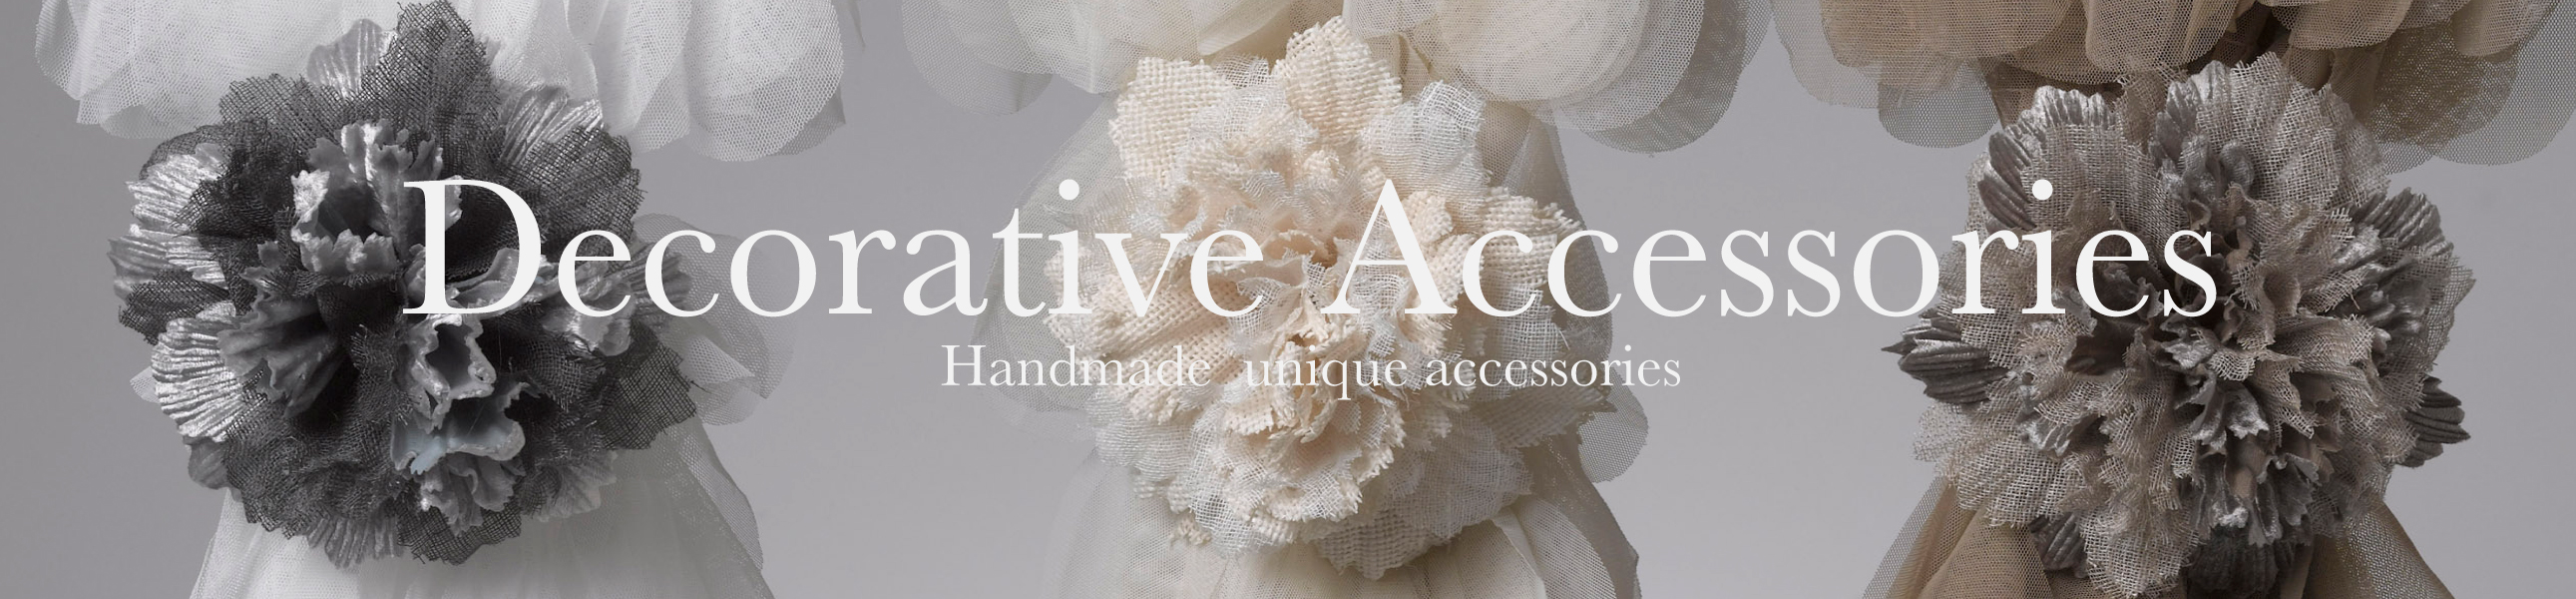 cd-decoratieve-accessories-banner.jpg